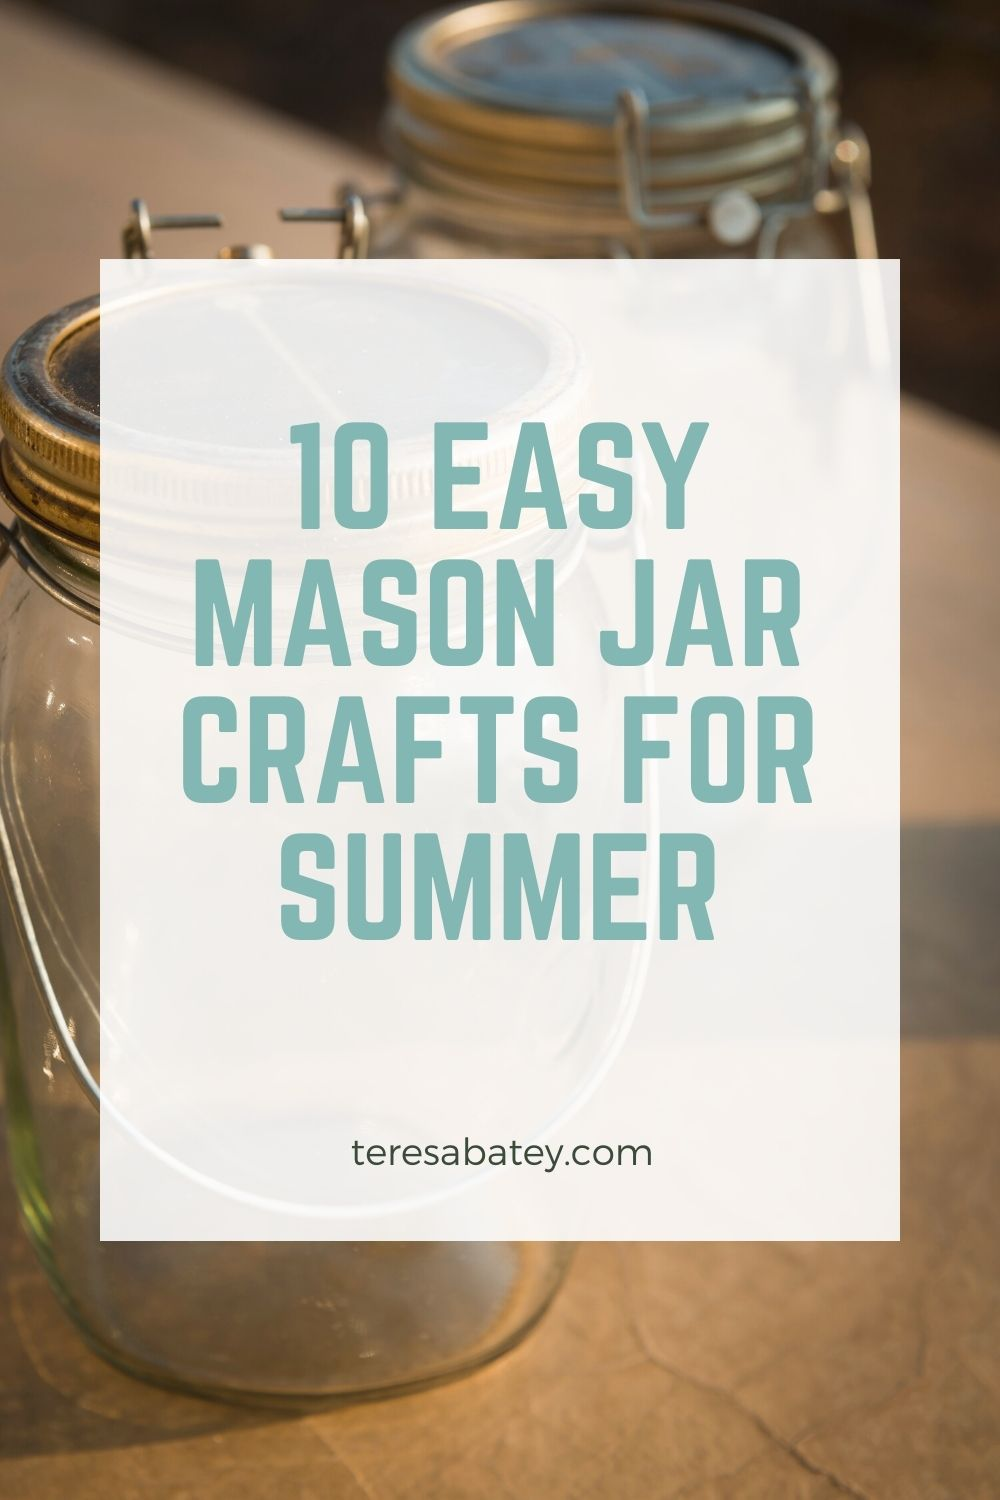 10 Easy Mason Jar Crafts for Summer